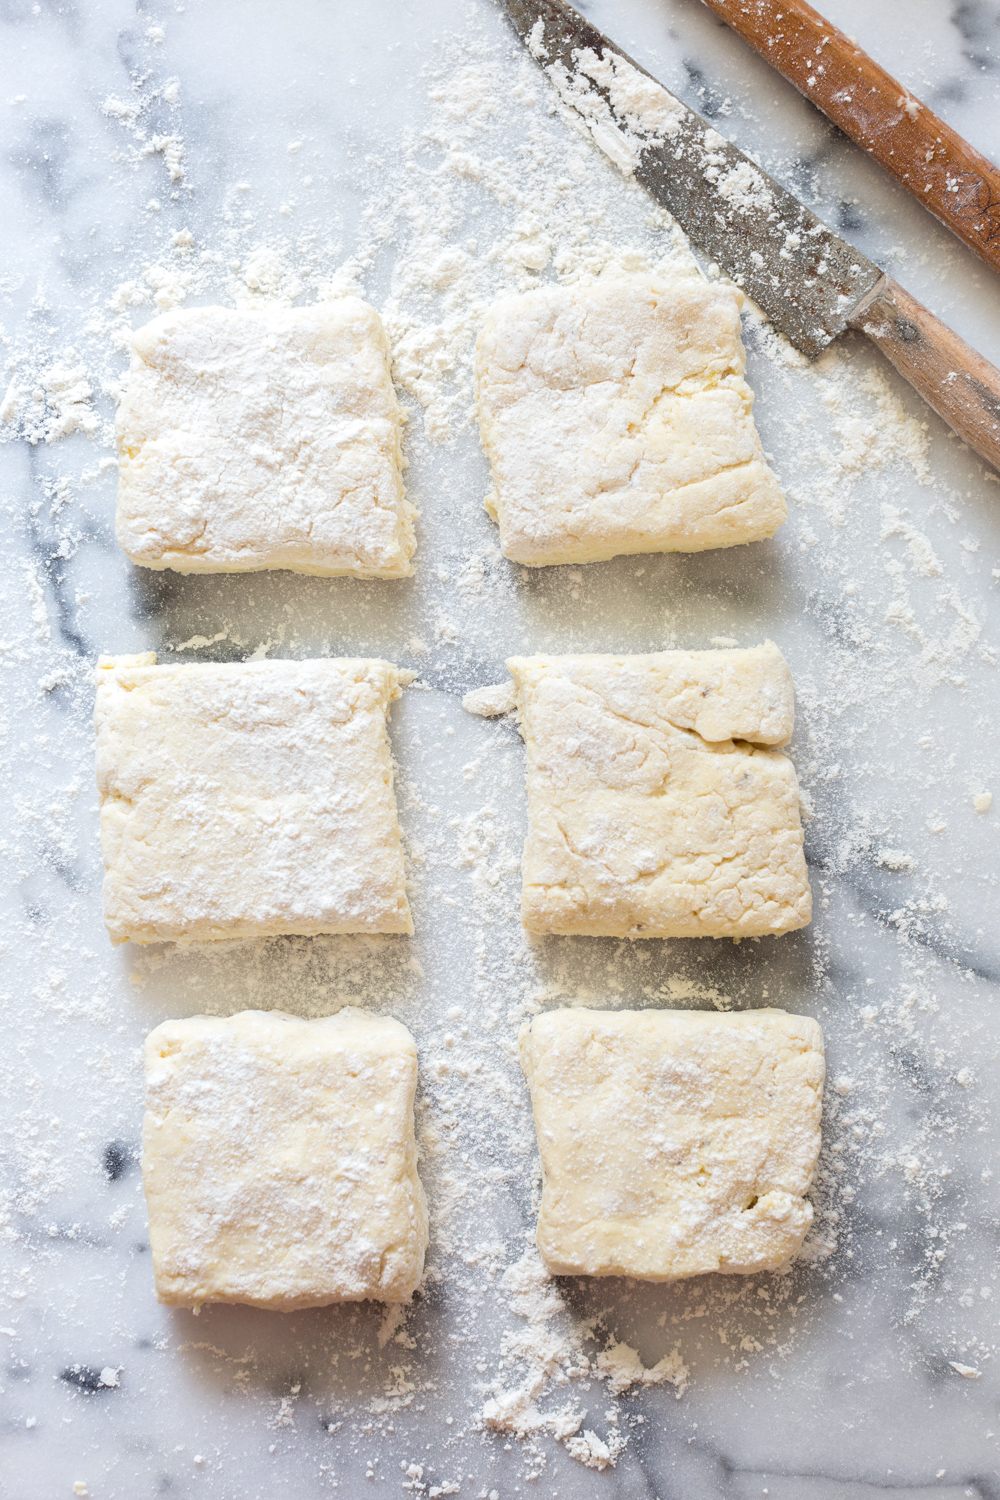 Slice the shortcake dough into 6 equal squares.